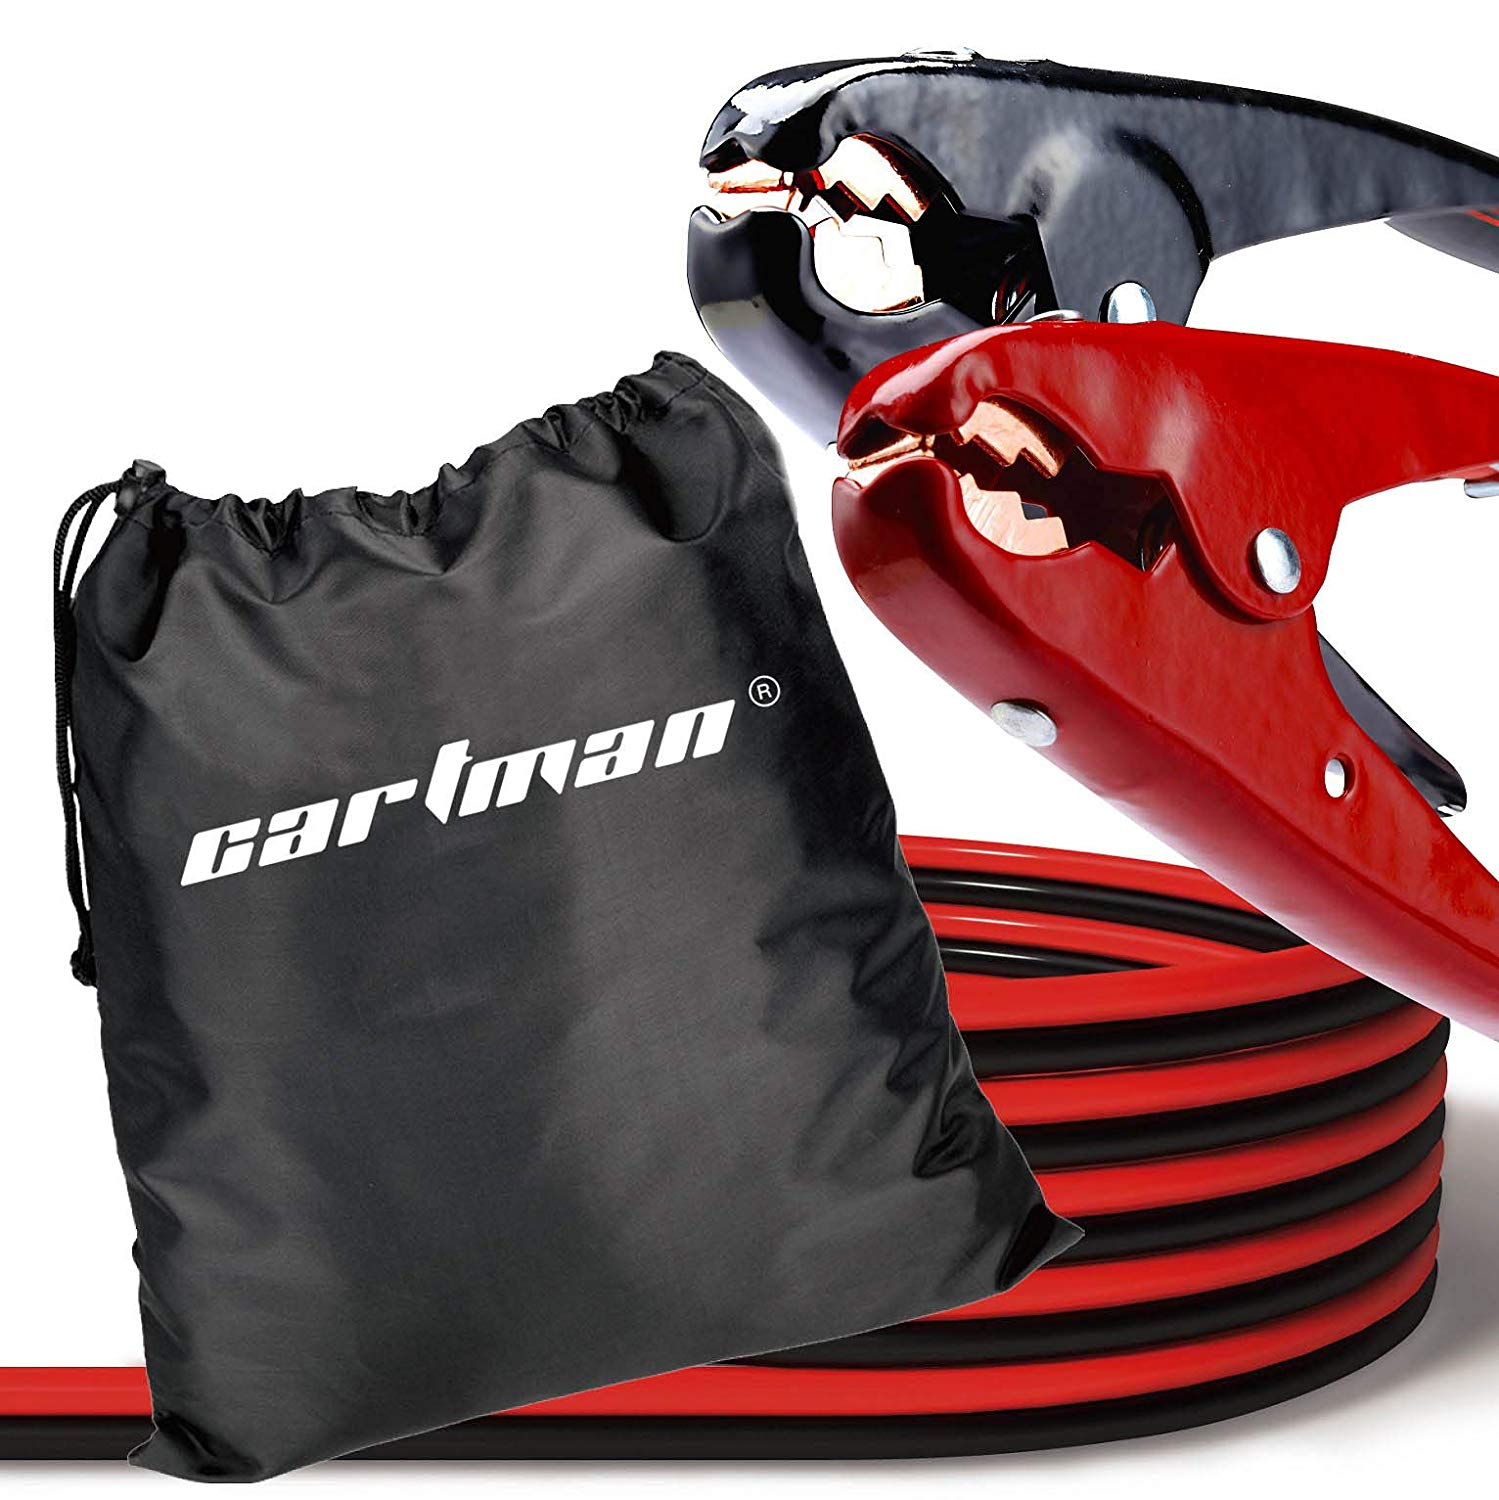 CARTMAN Heavy Duty Booster Cables Jump Cable with Carry Bag